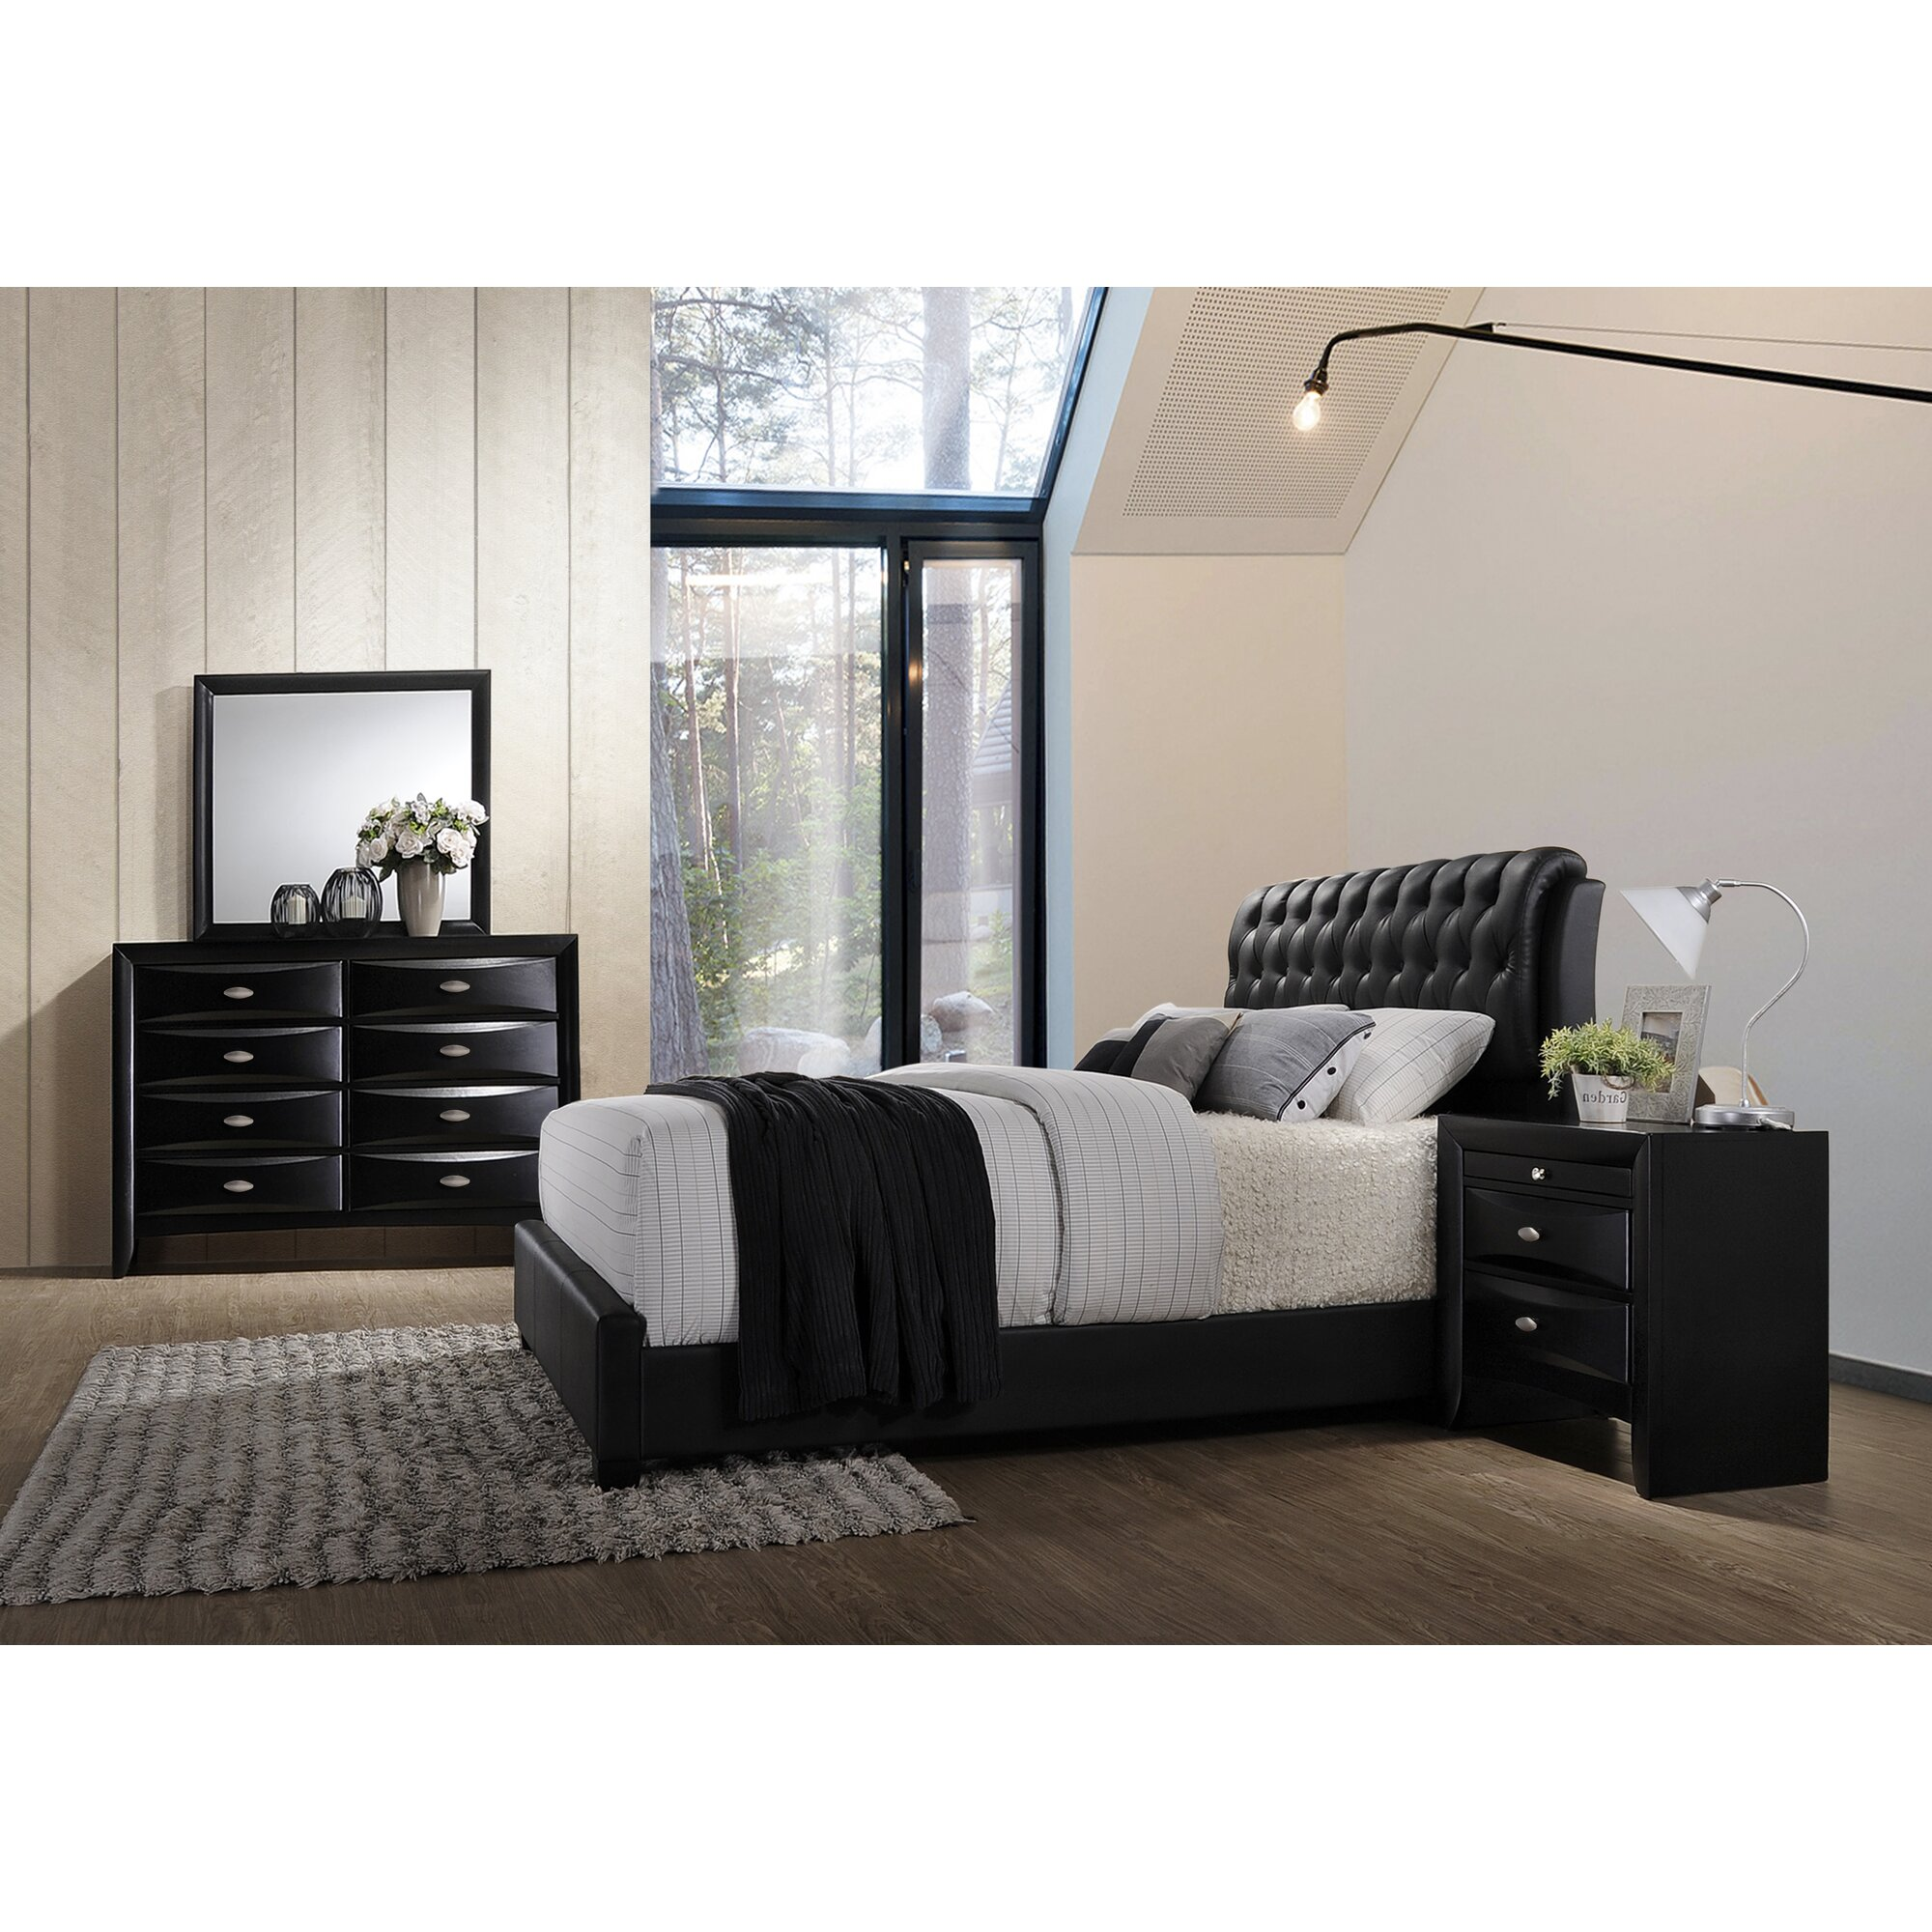 Bedroom Furniture: Roundhill Furniture Blemerey 4 Piece Bedroom Set